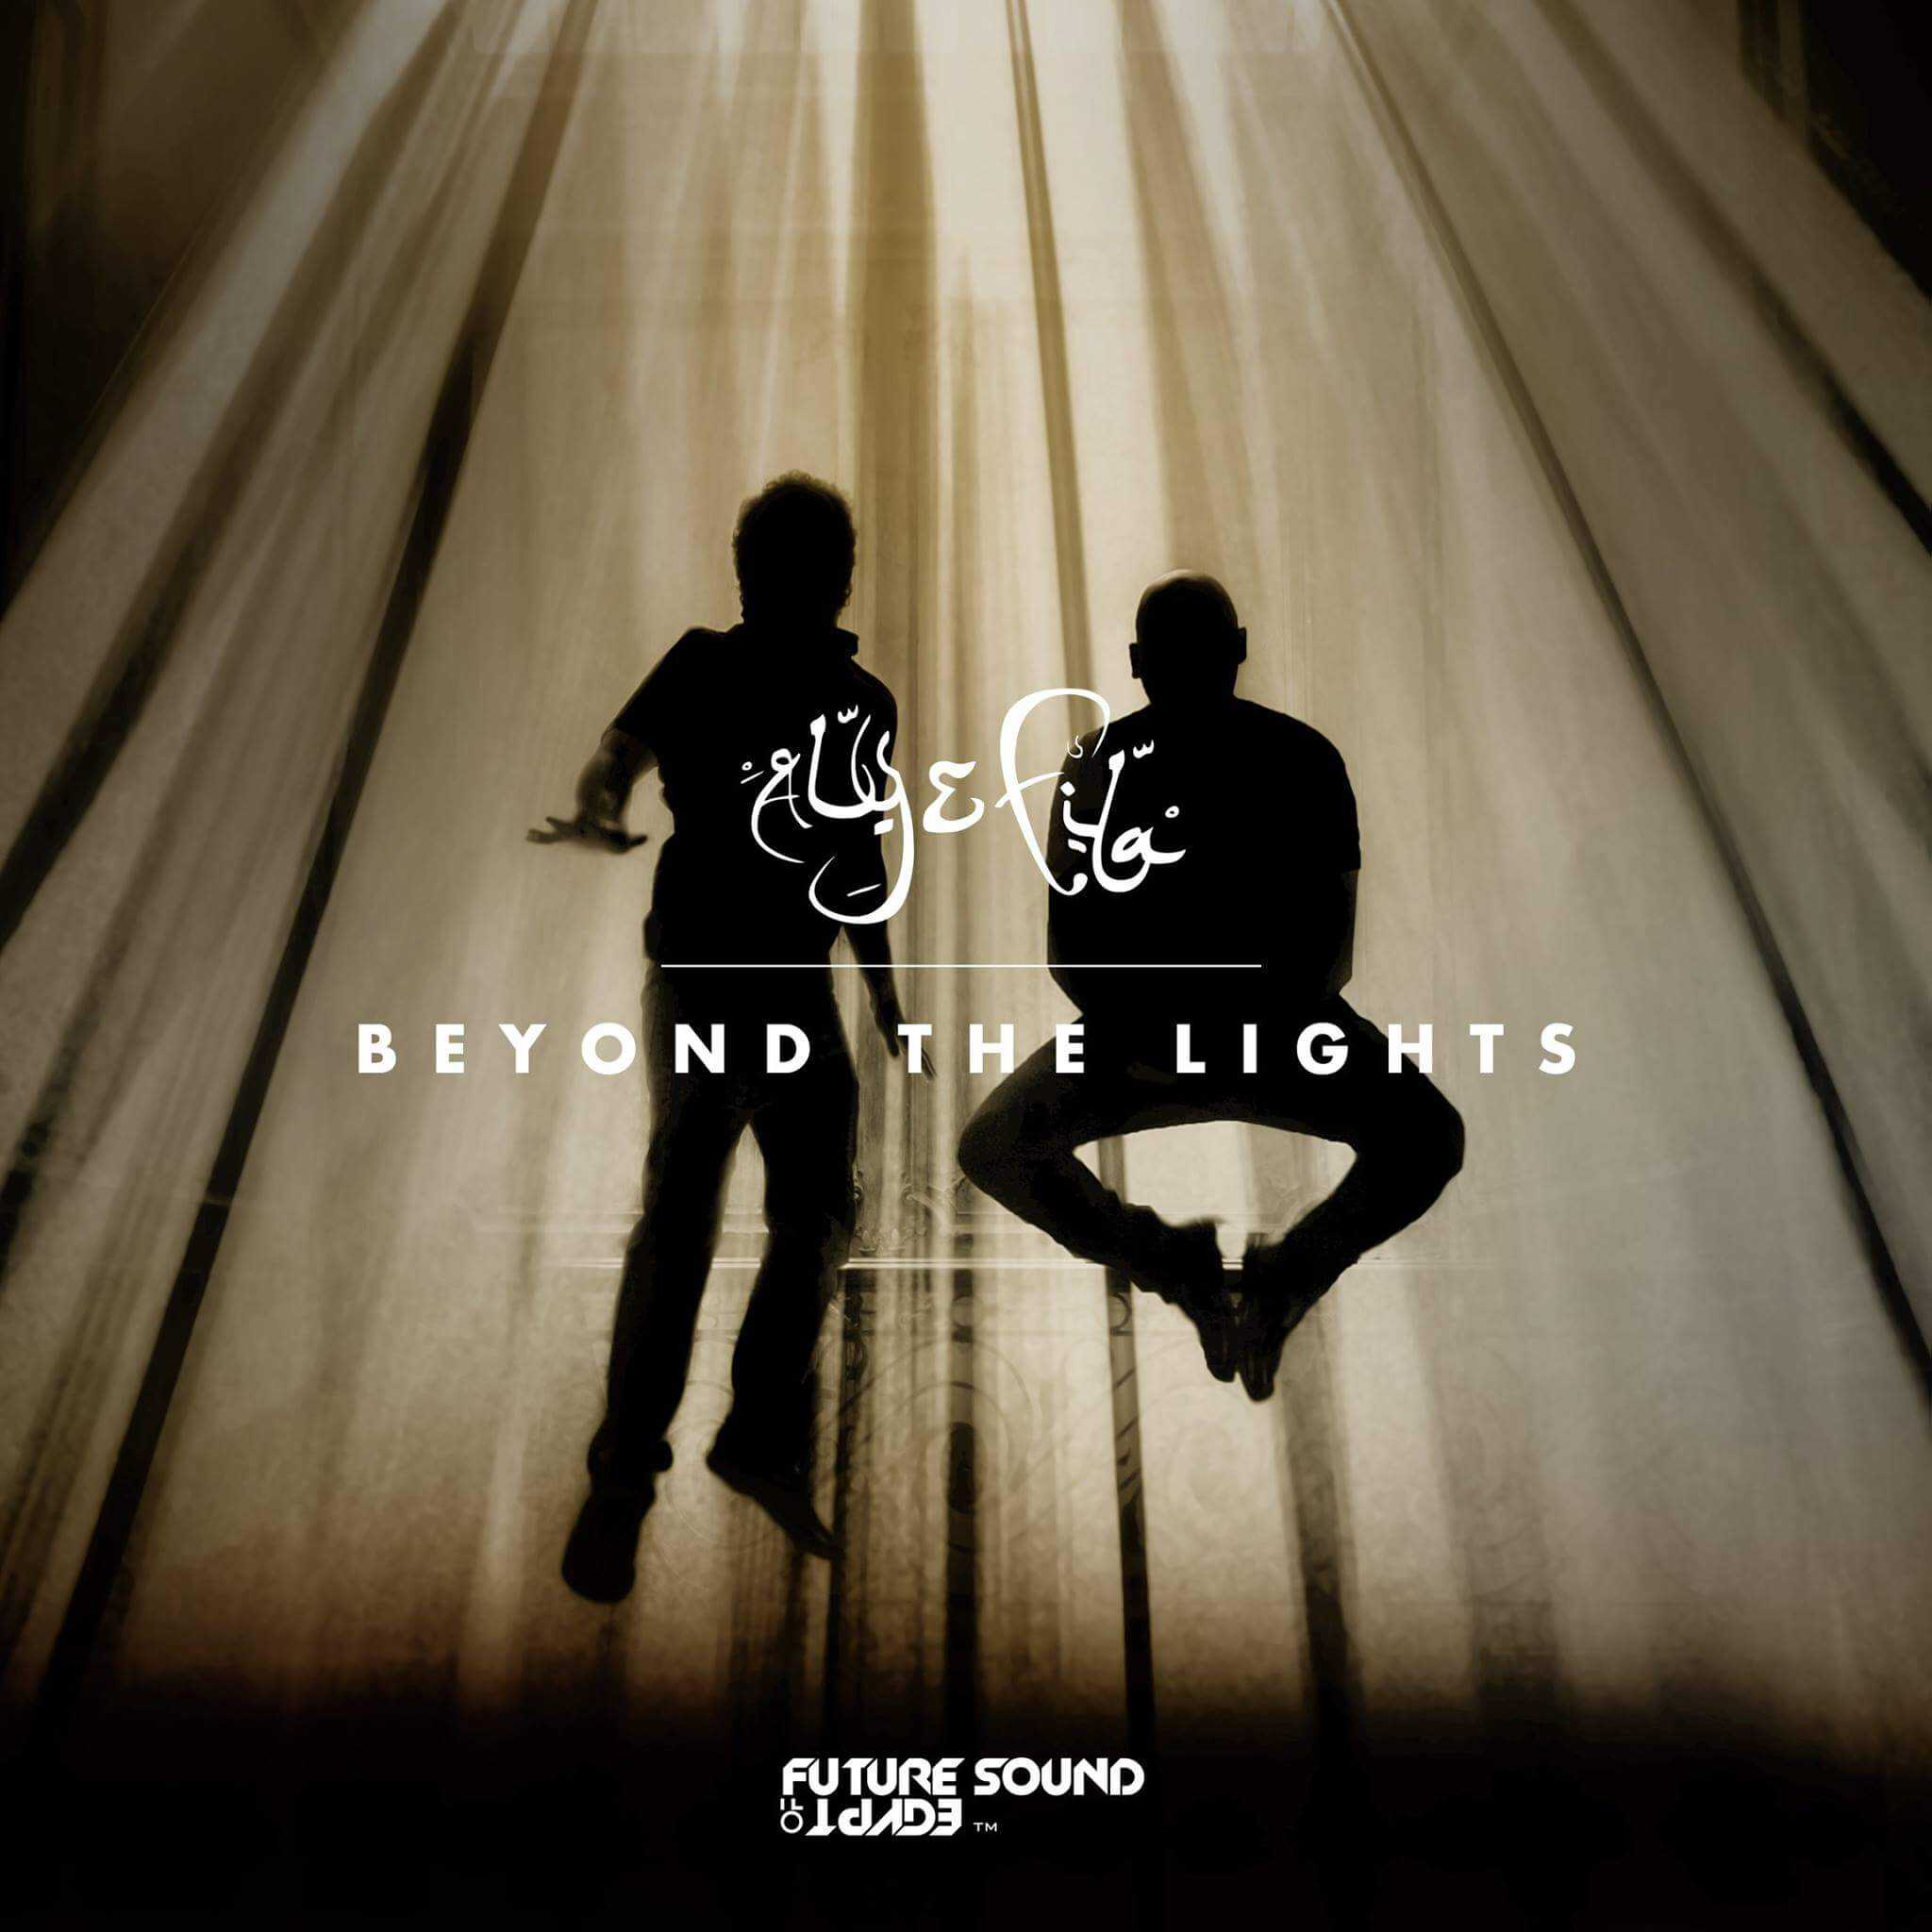 Aly & Fila Announce 'Beyond the Lights' World Tour